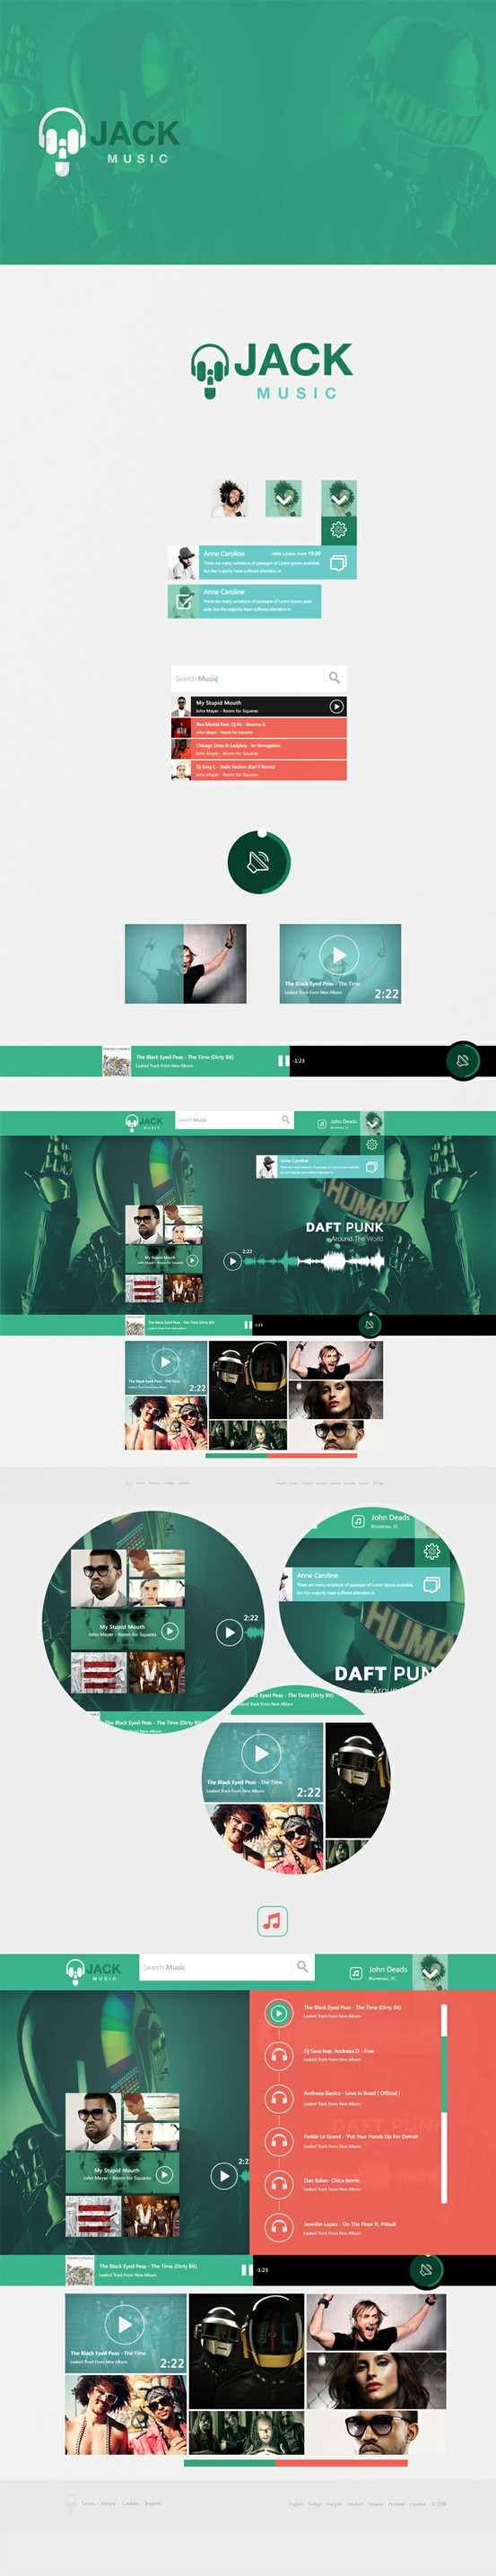 Music Jack (web site concept) by Cüneyt SEN. | #webdesign #it #web #design #layout #userinterface #website #webdesign < repinned by www.BlickeDeeler.de | Take a look at www.WebsiteDesign-Hamburg.de